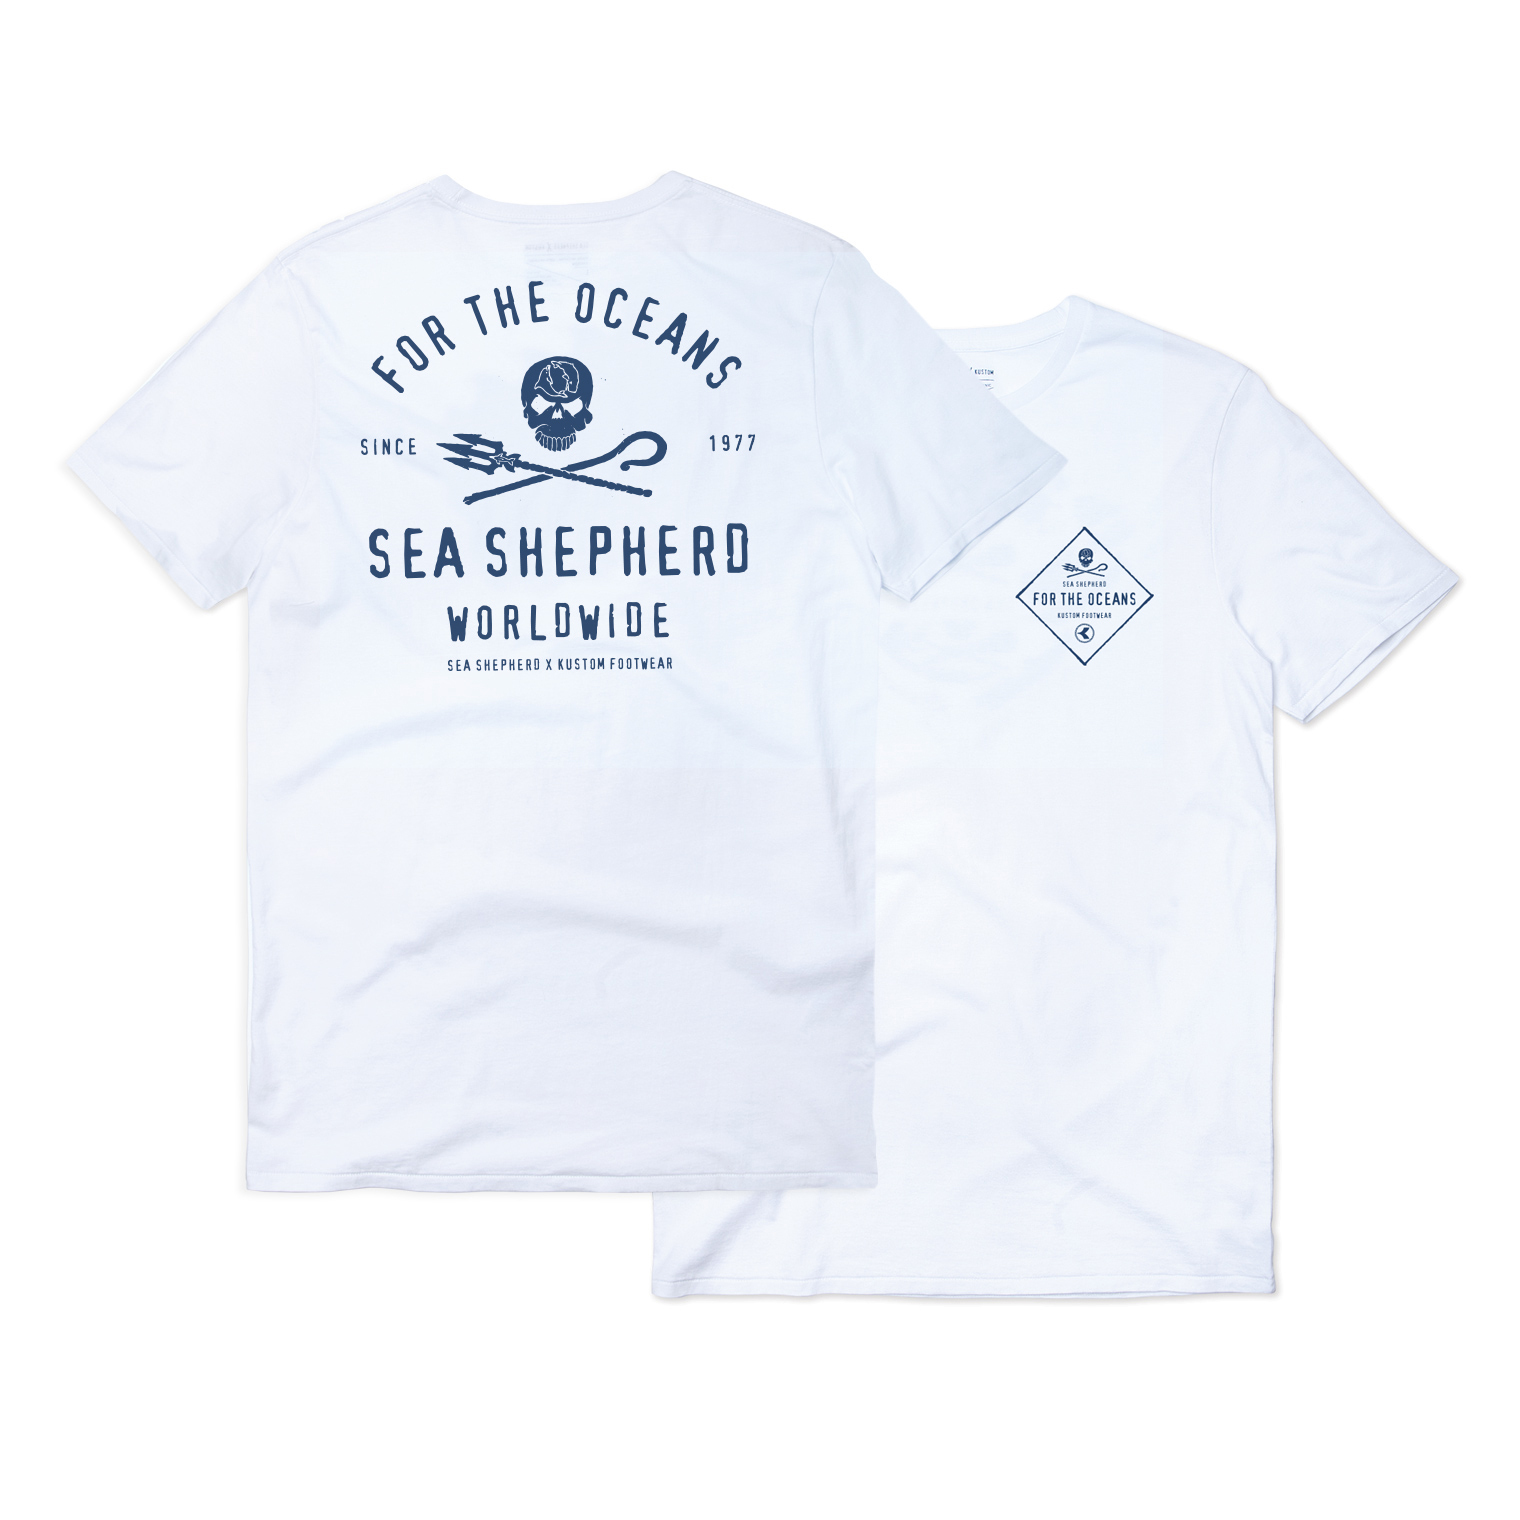 KUSTOM CLOTHING & ACCESSORIES SS FOR THE OCEANS